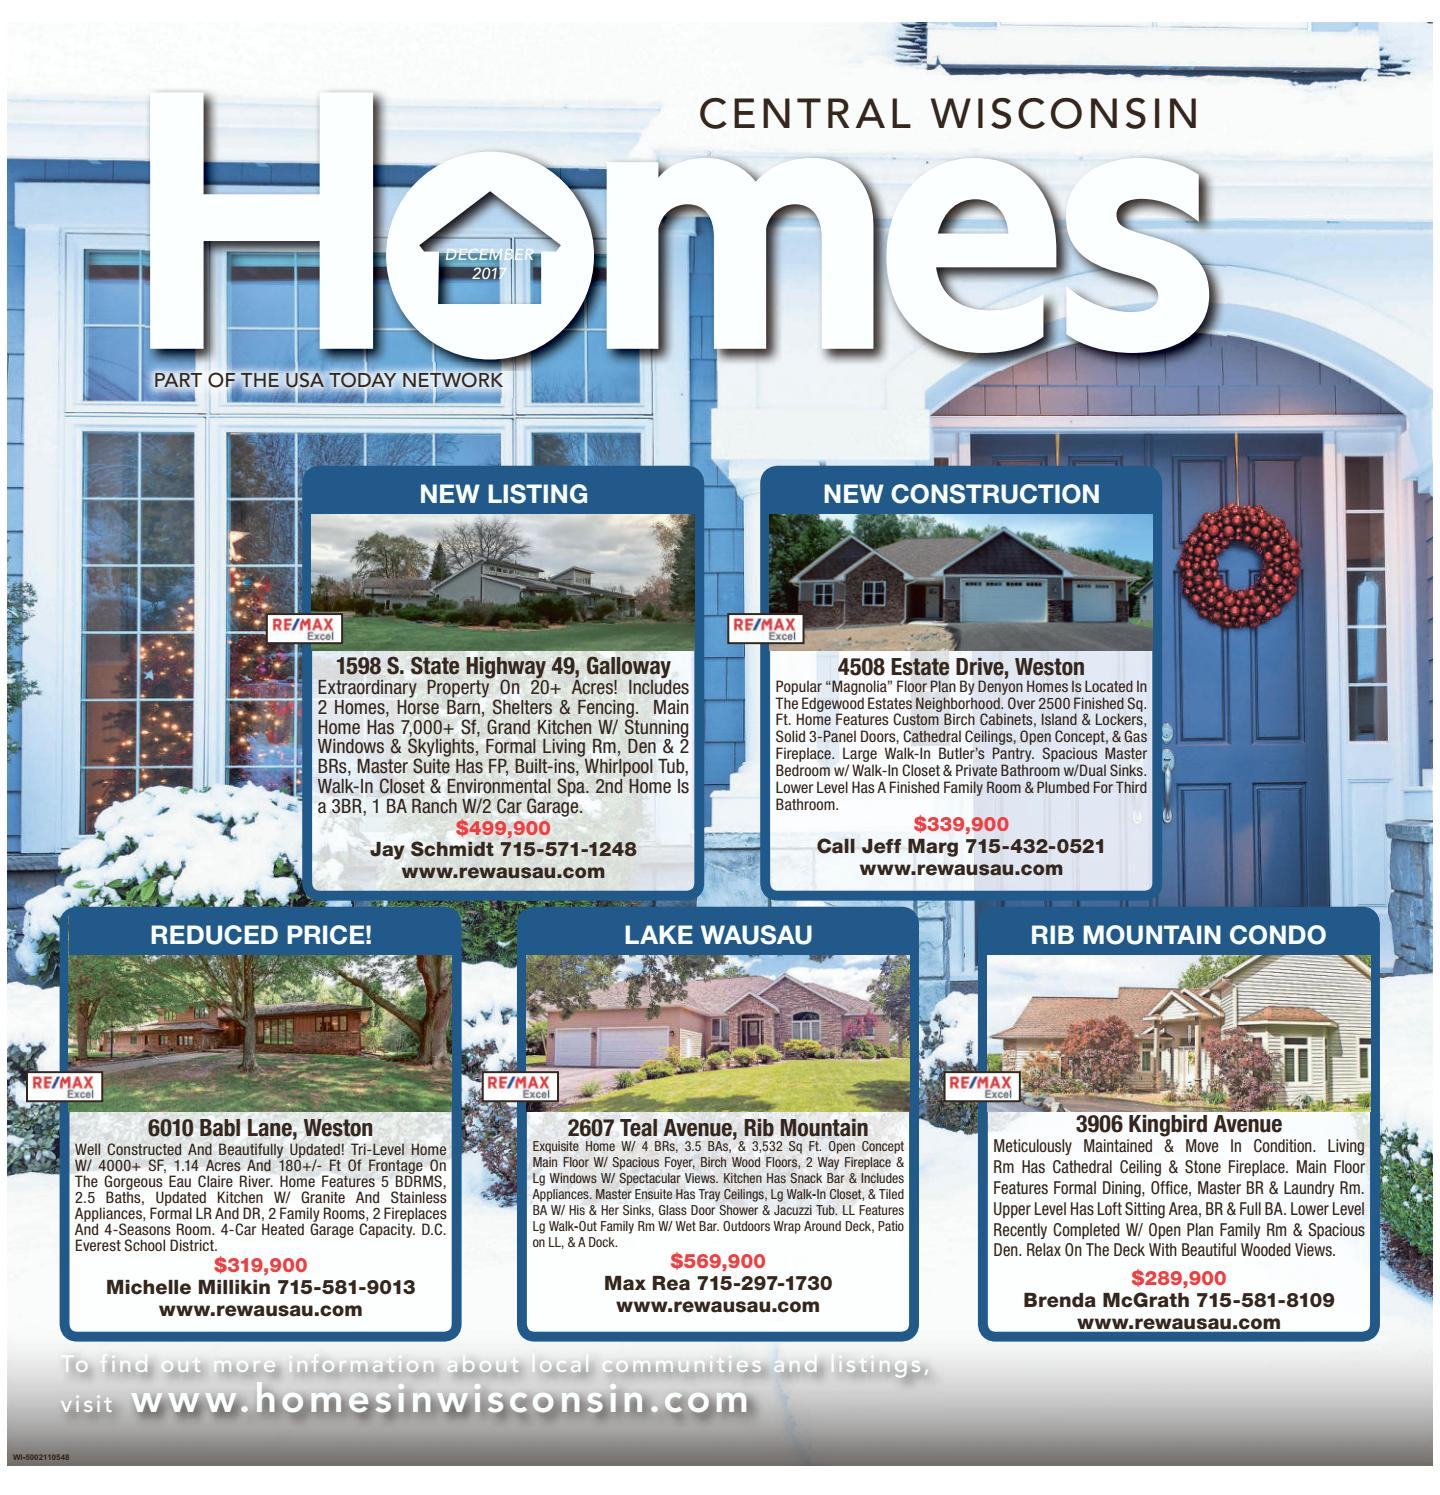 Barnum Brico Depot Frais Central Wisconsin Homes by Jim Reese issuu Of 34 Beau Barnum Brico Depot